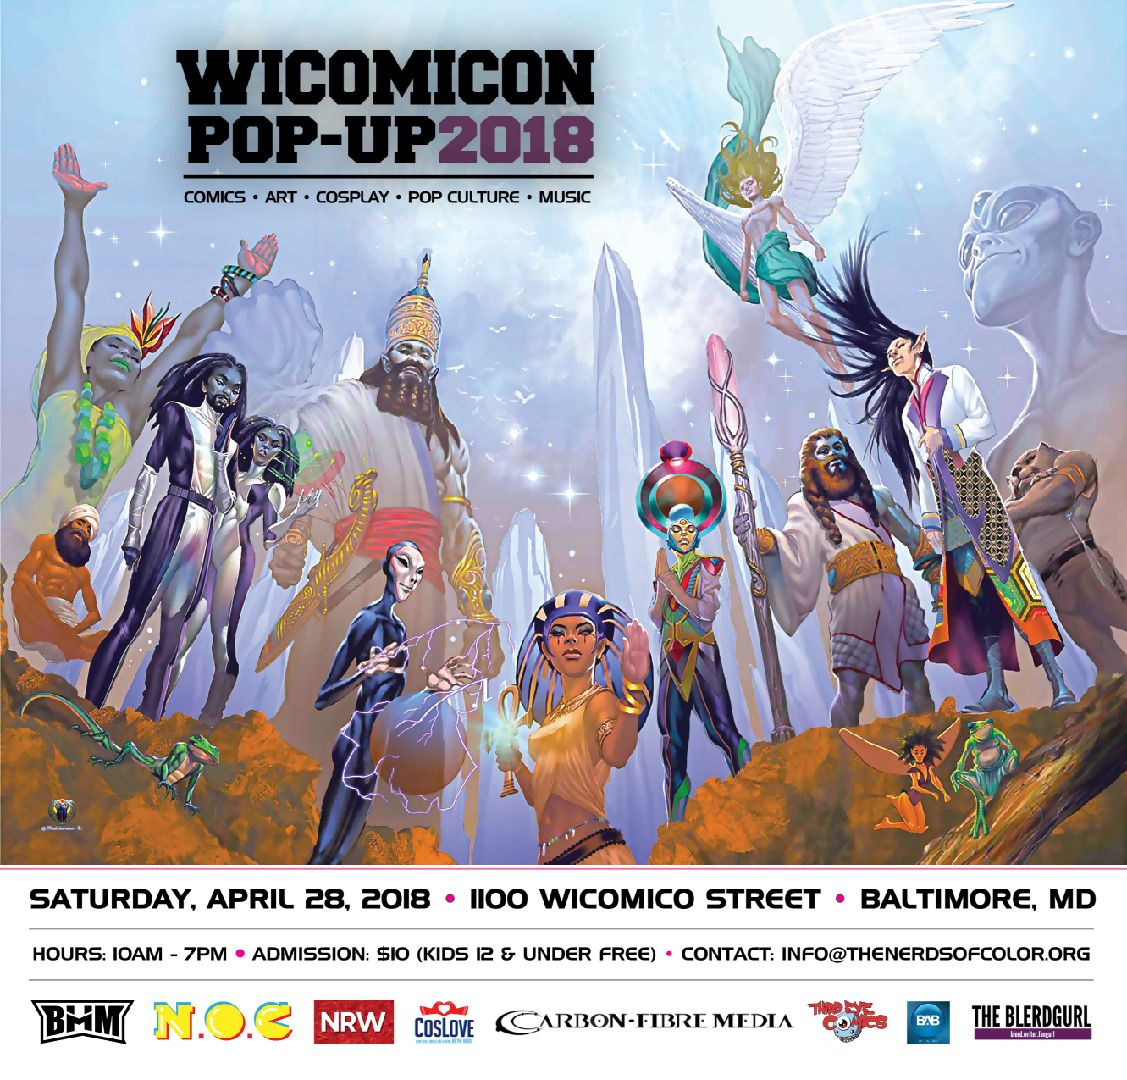 WICOMICON: Saturday April 28, 1100 Wicomico Street, Baltimore, MD, 10 am to 7 pm